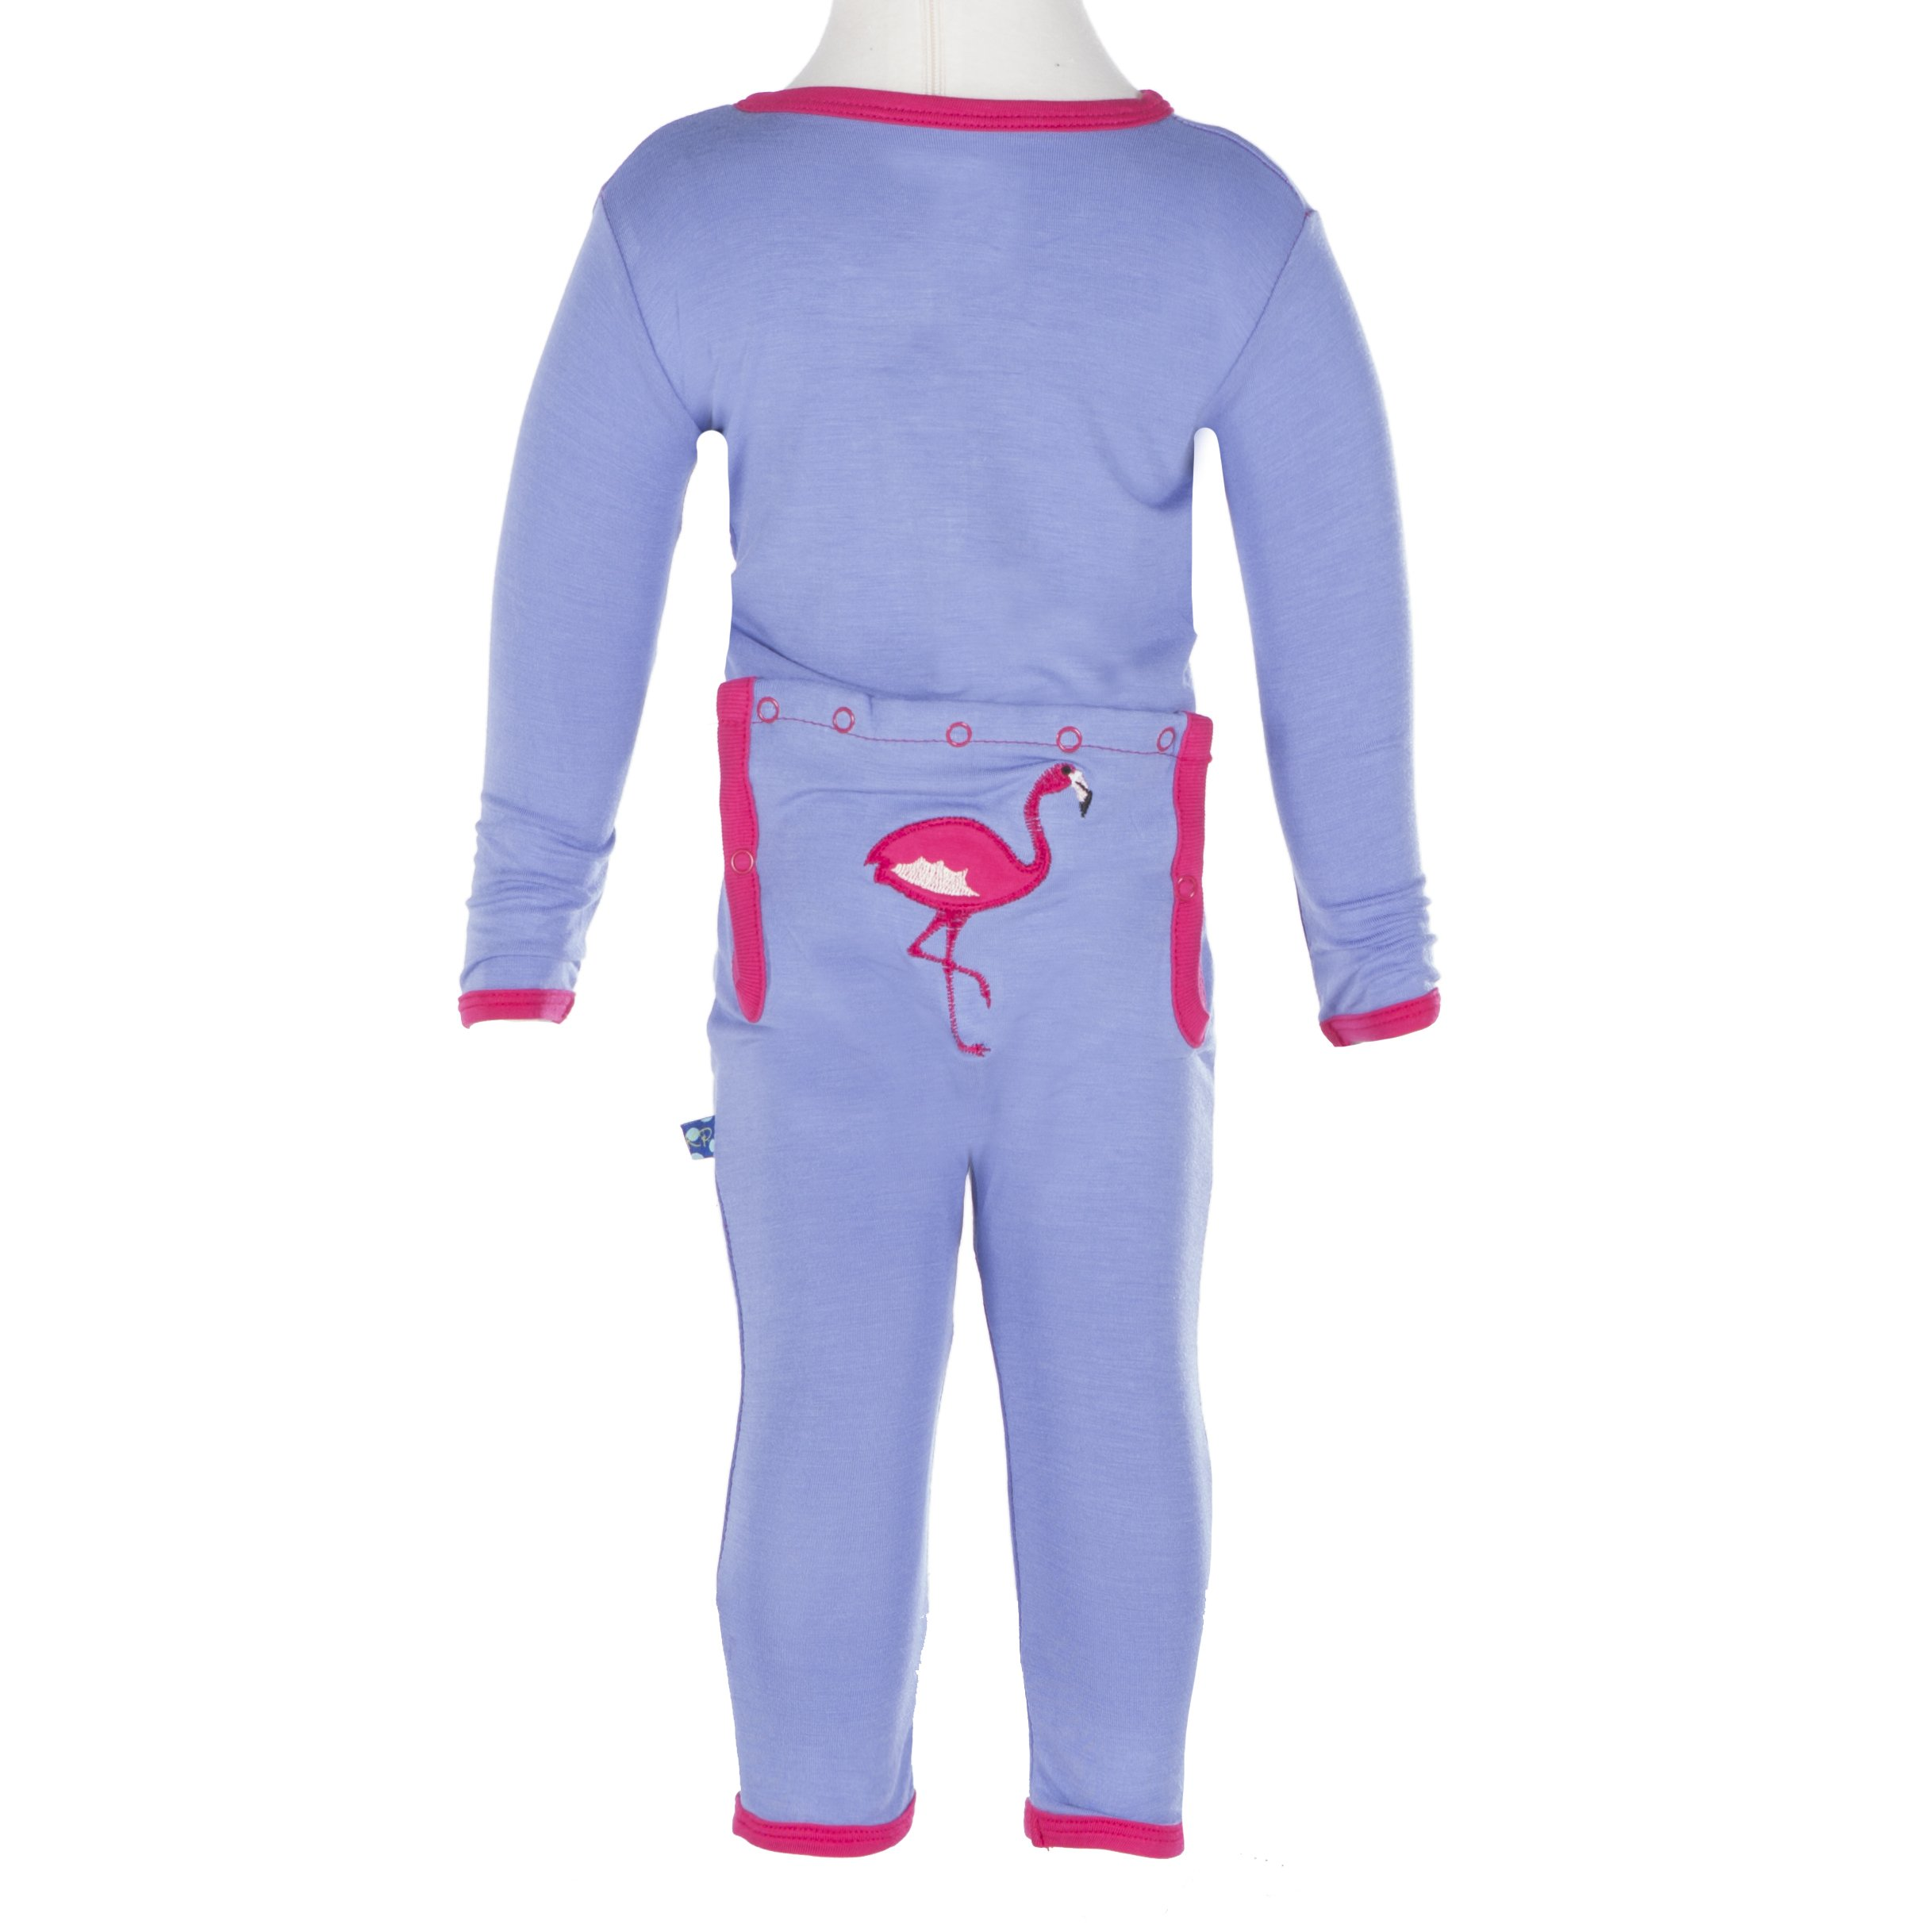 Kickee Pants Big Girls' Applique Coverall in Forget Me Not Flamingo, 4T